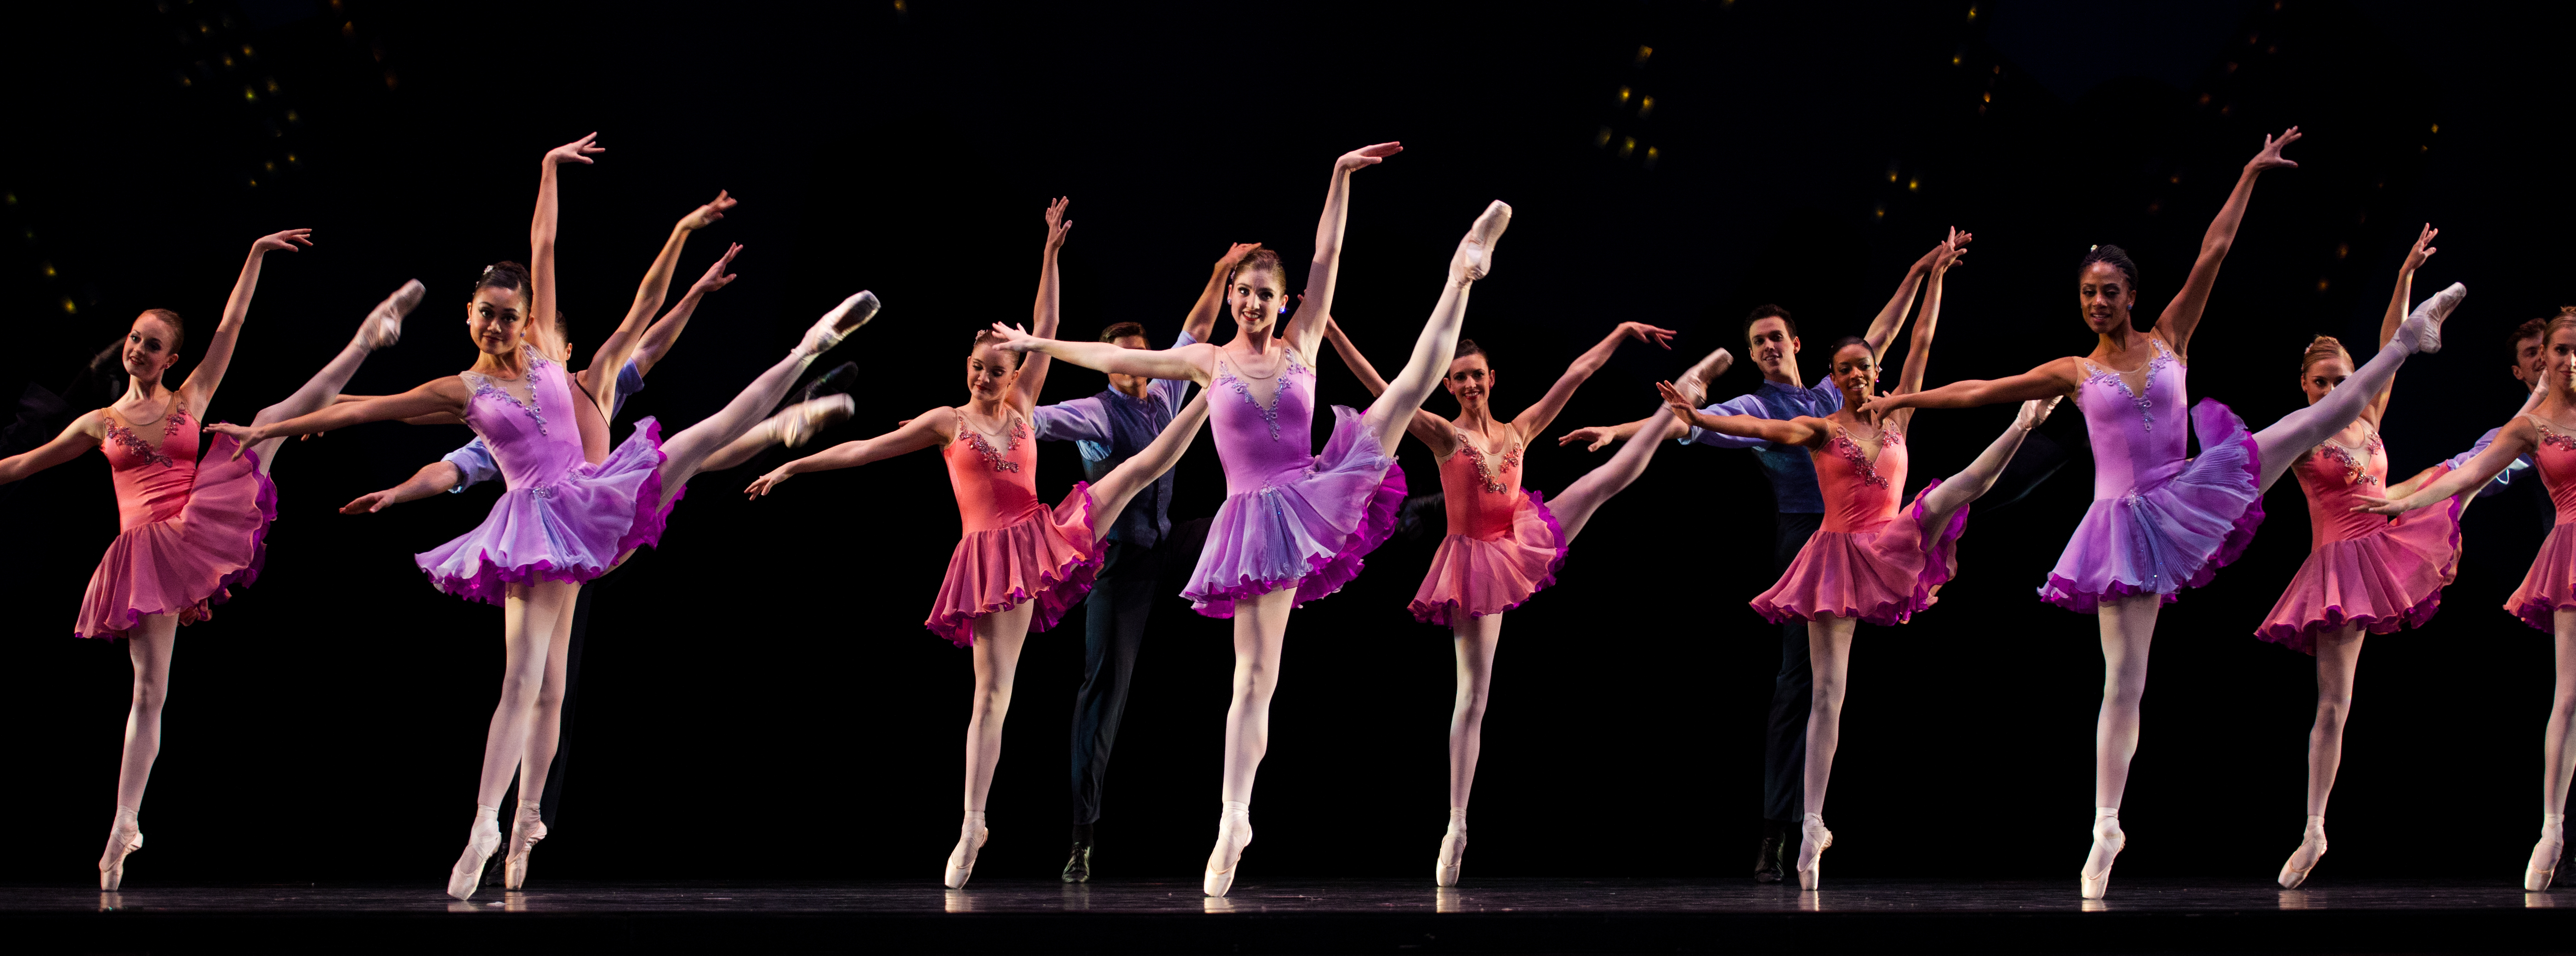 Who Cares Ballet West